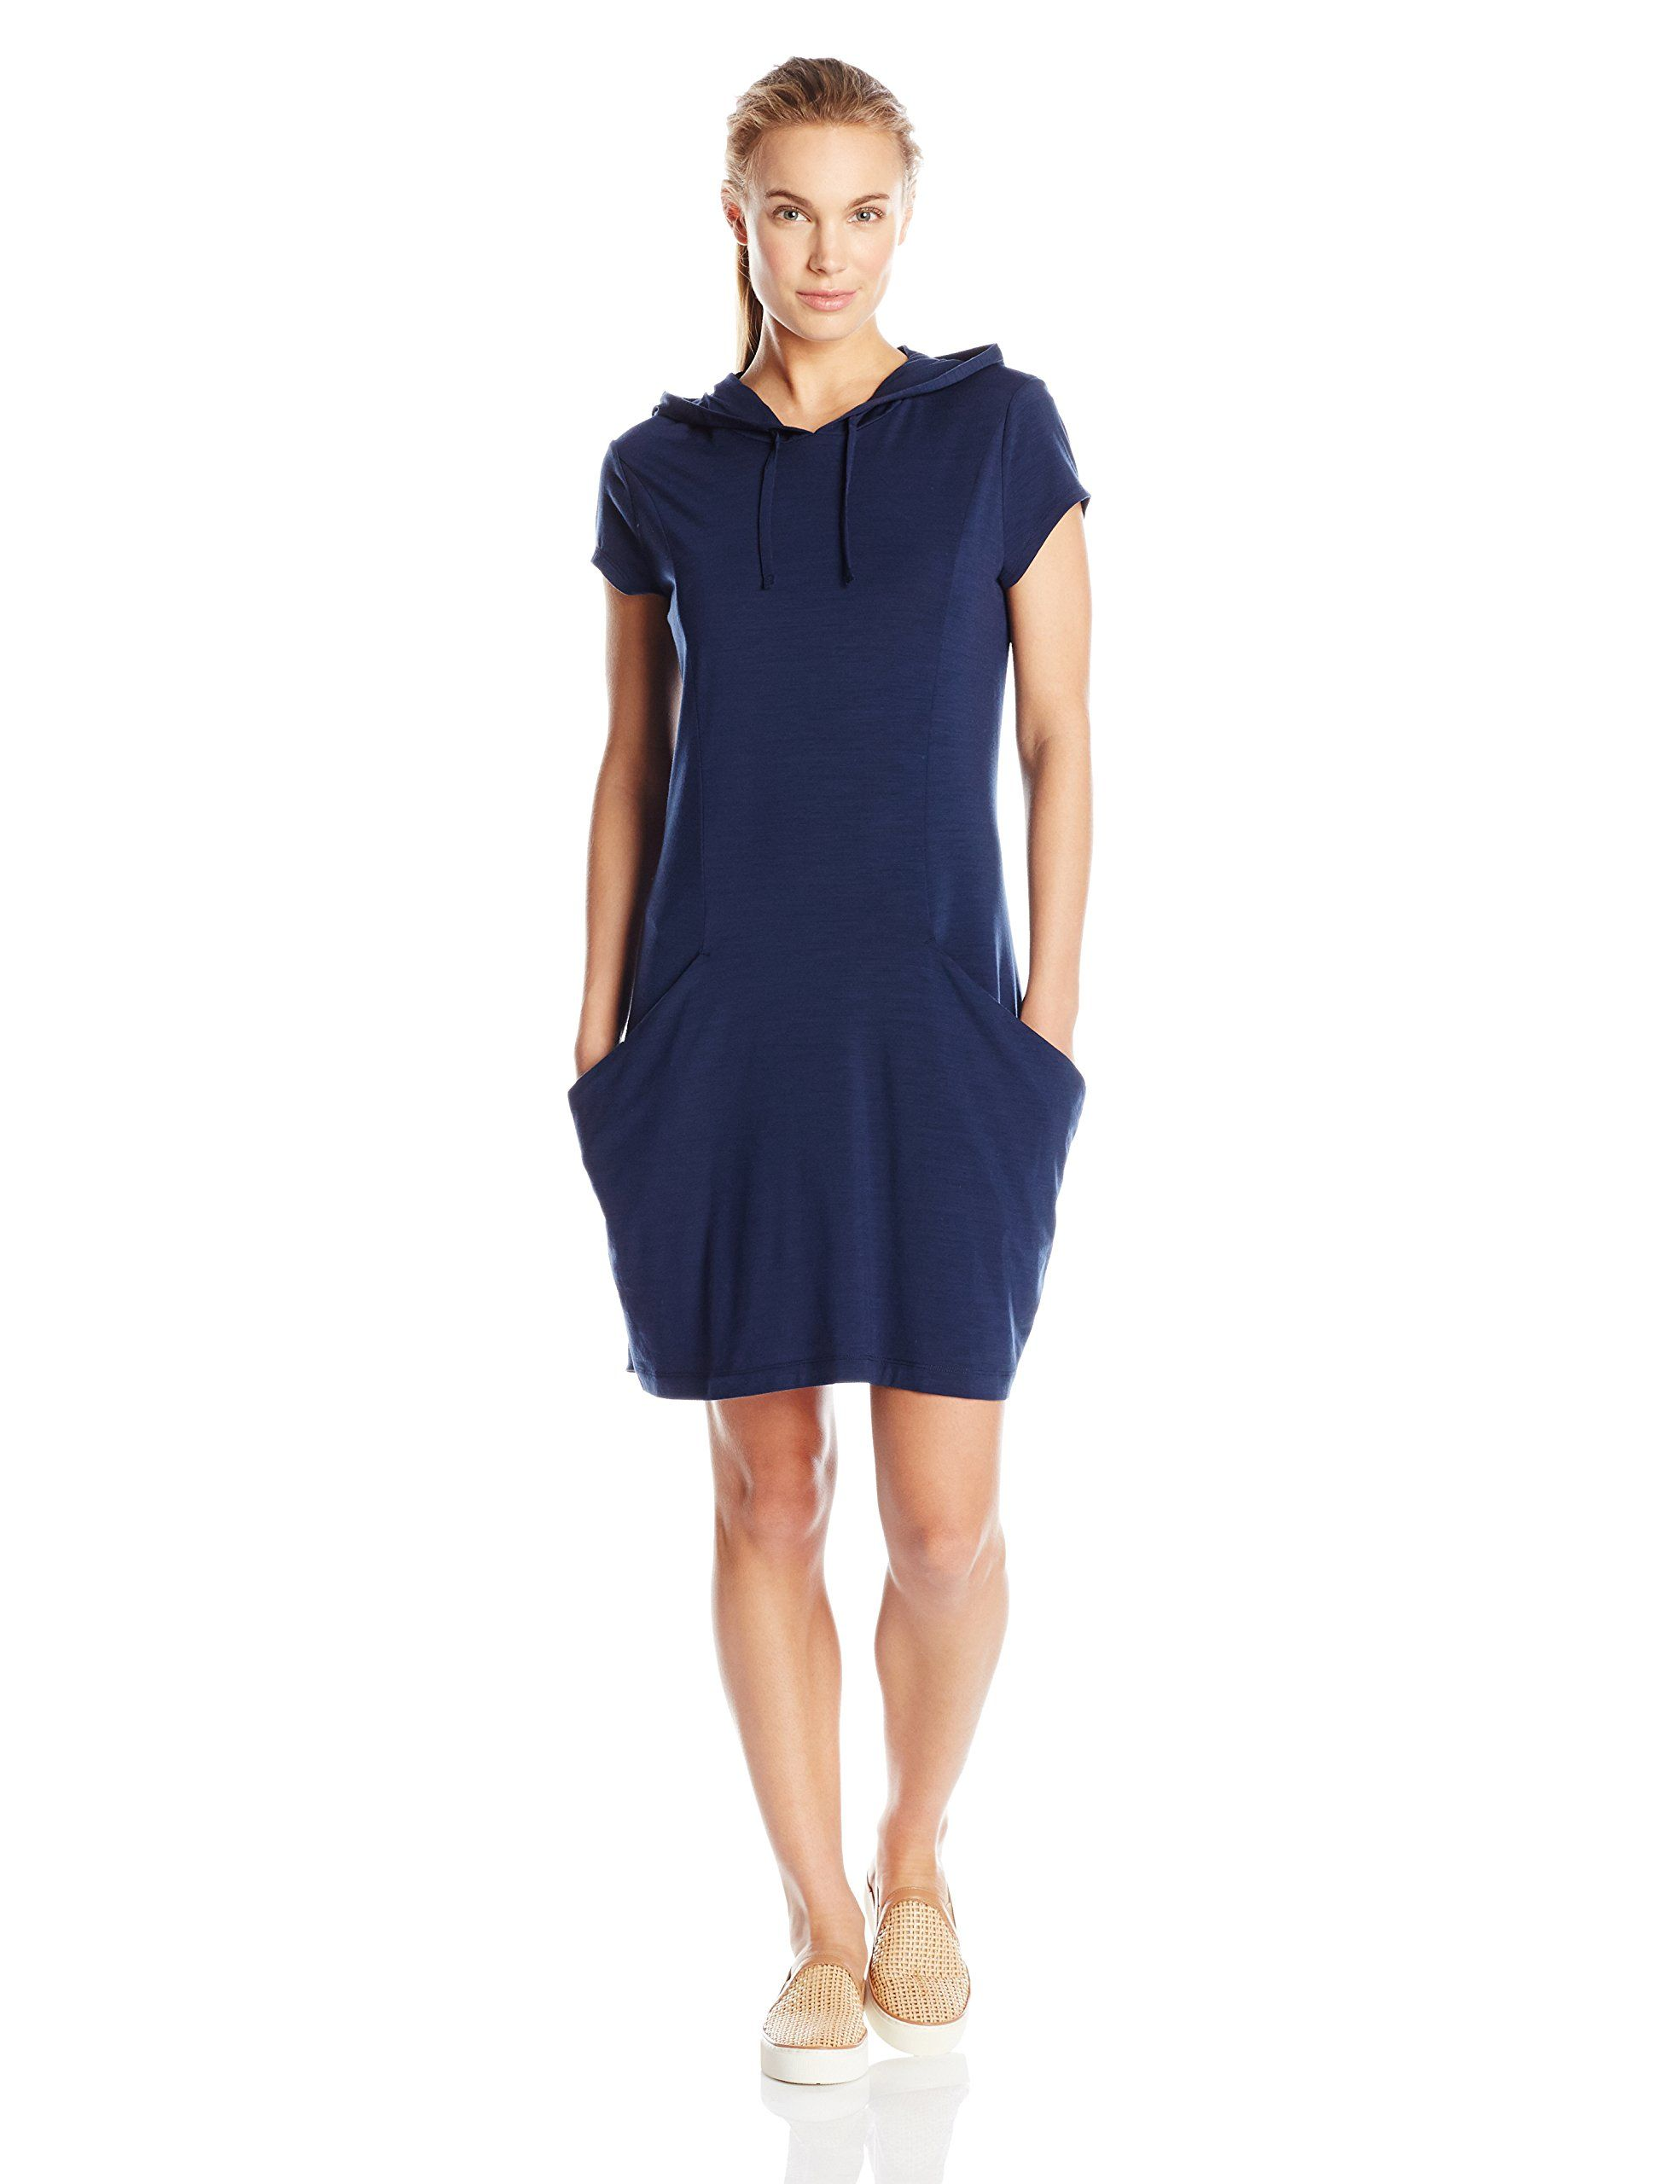 040b974a8f Icebreaker Womens Yanni Hooded Dress Admiral Heather Large -- To view  further for this item, visit the image link. (This is an affiliate link)